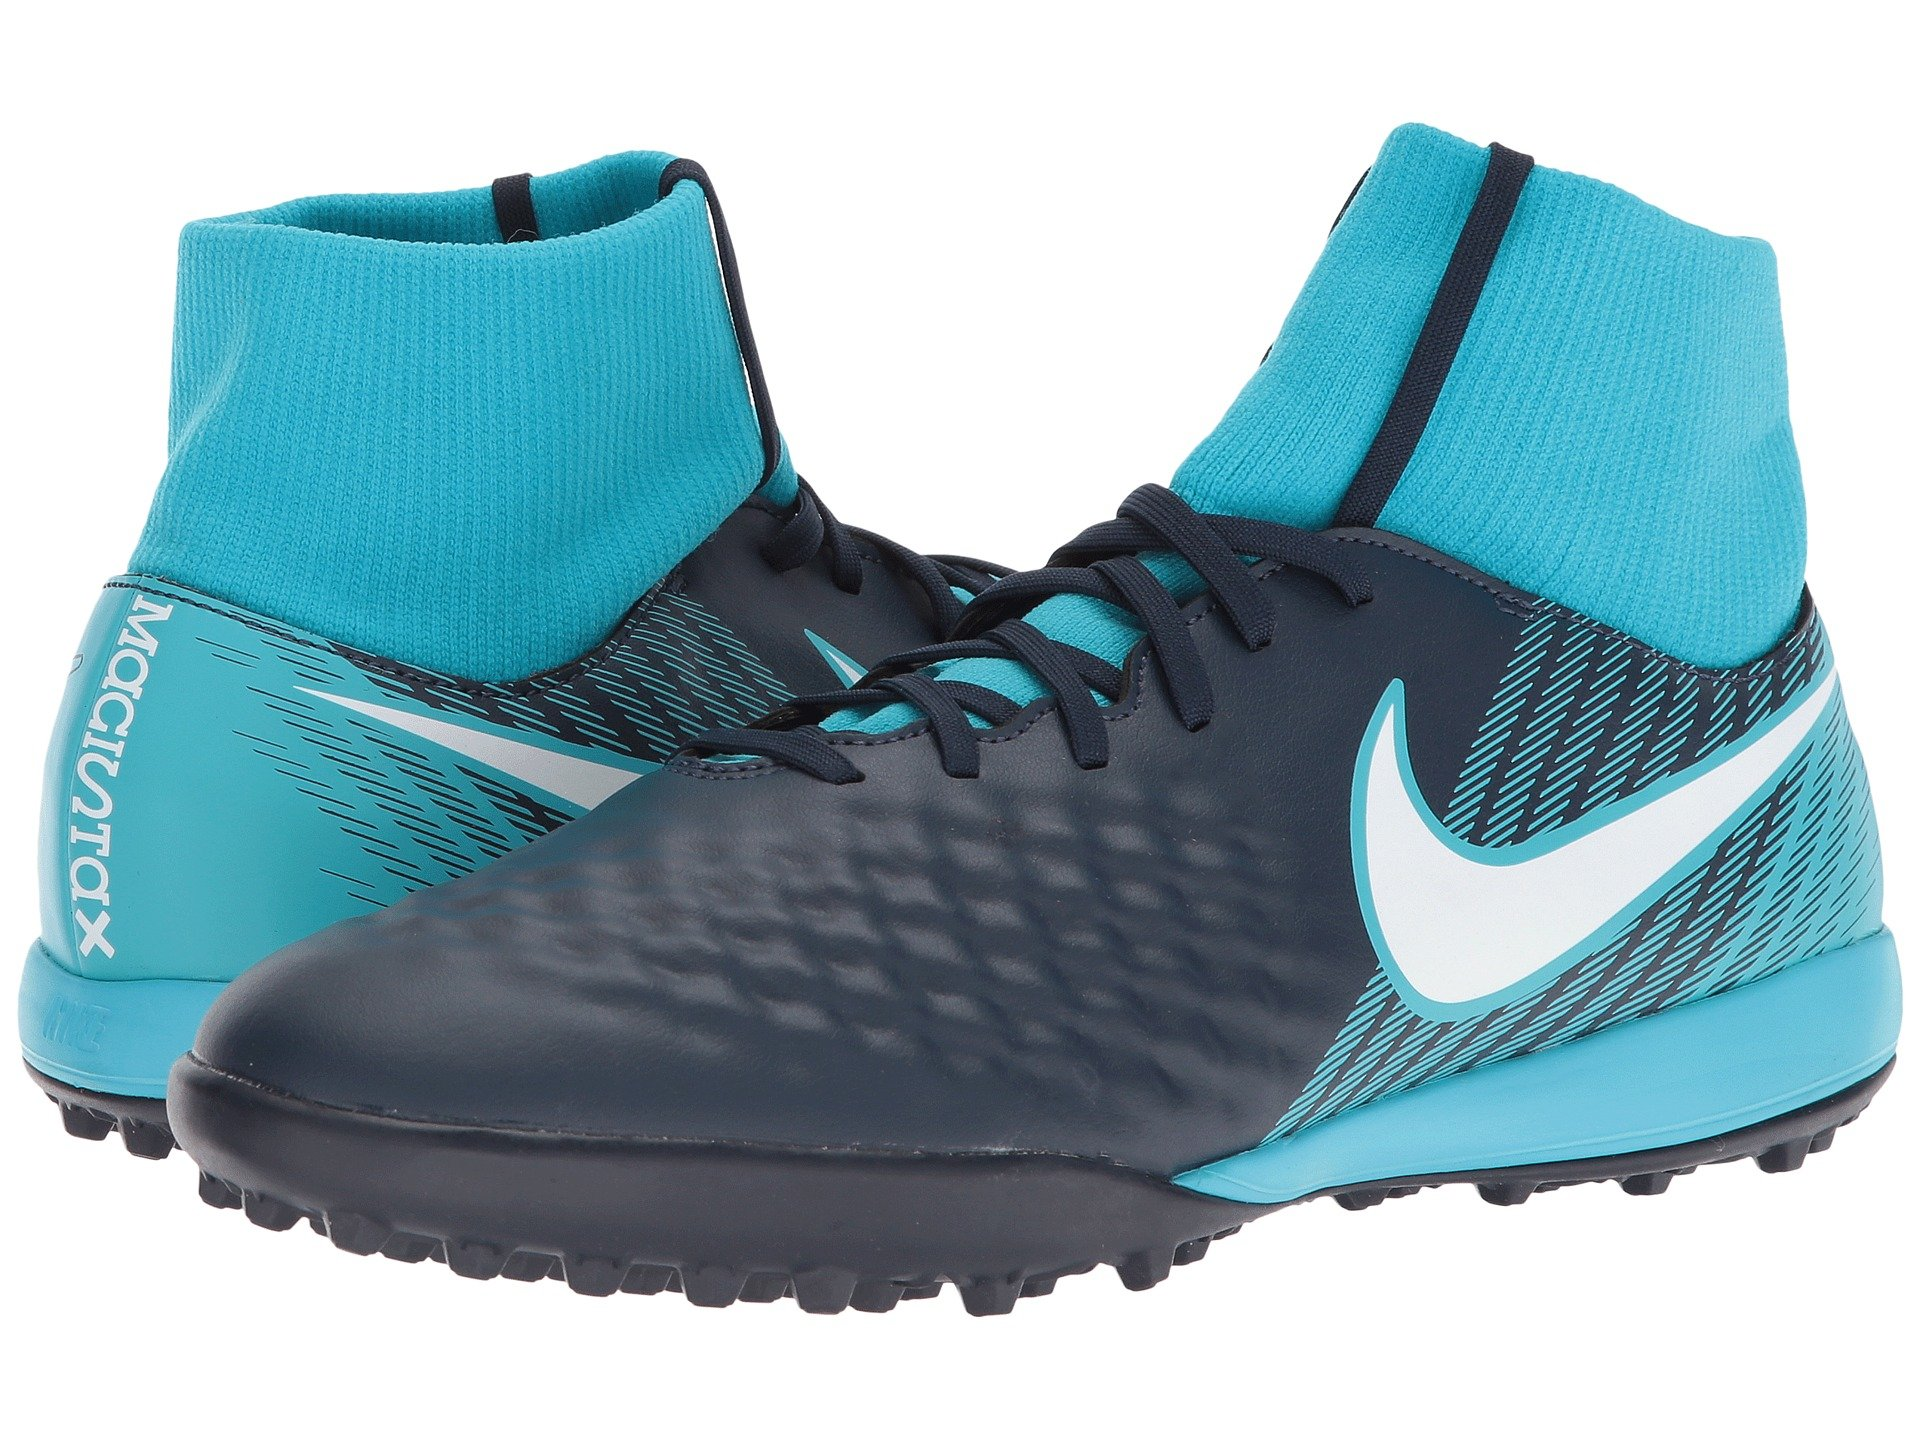 designer fashion 7c217 88234 Nike Magista Onda Ii Dynamic Fit Tf, ObsidianWhiteGamma BlueGlacier